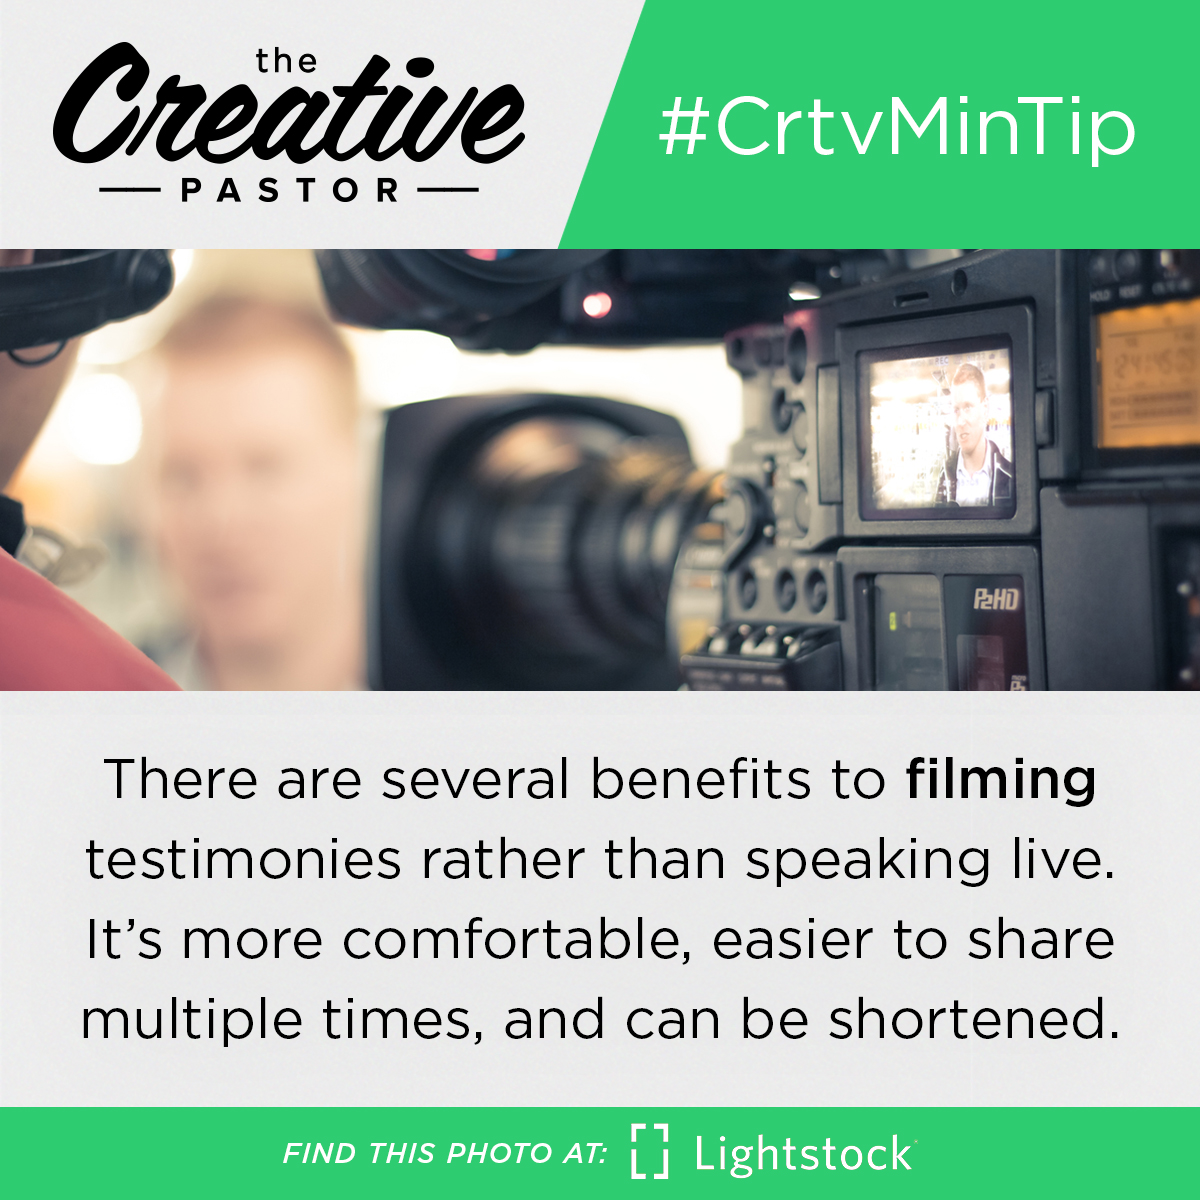 #CrtvMinTip: There are several benefits to filming testimonies rather than speaking live. It's more comfortable, easier to share multiple times, and can be shortened.